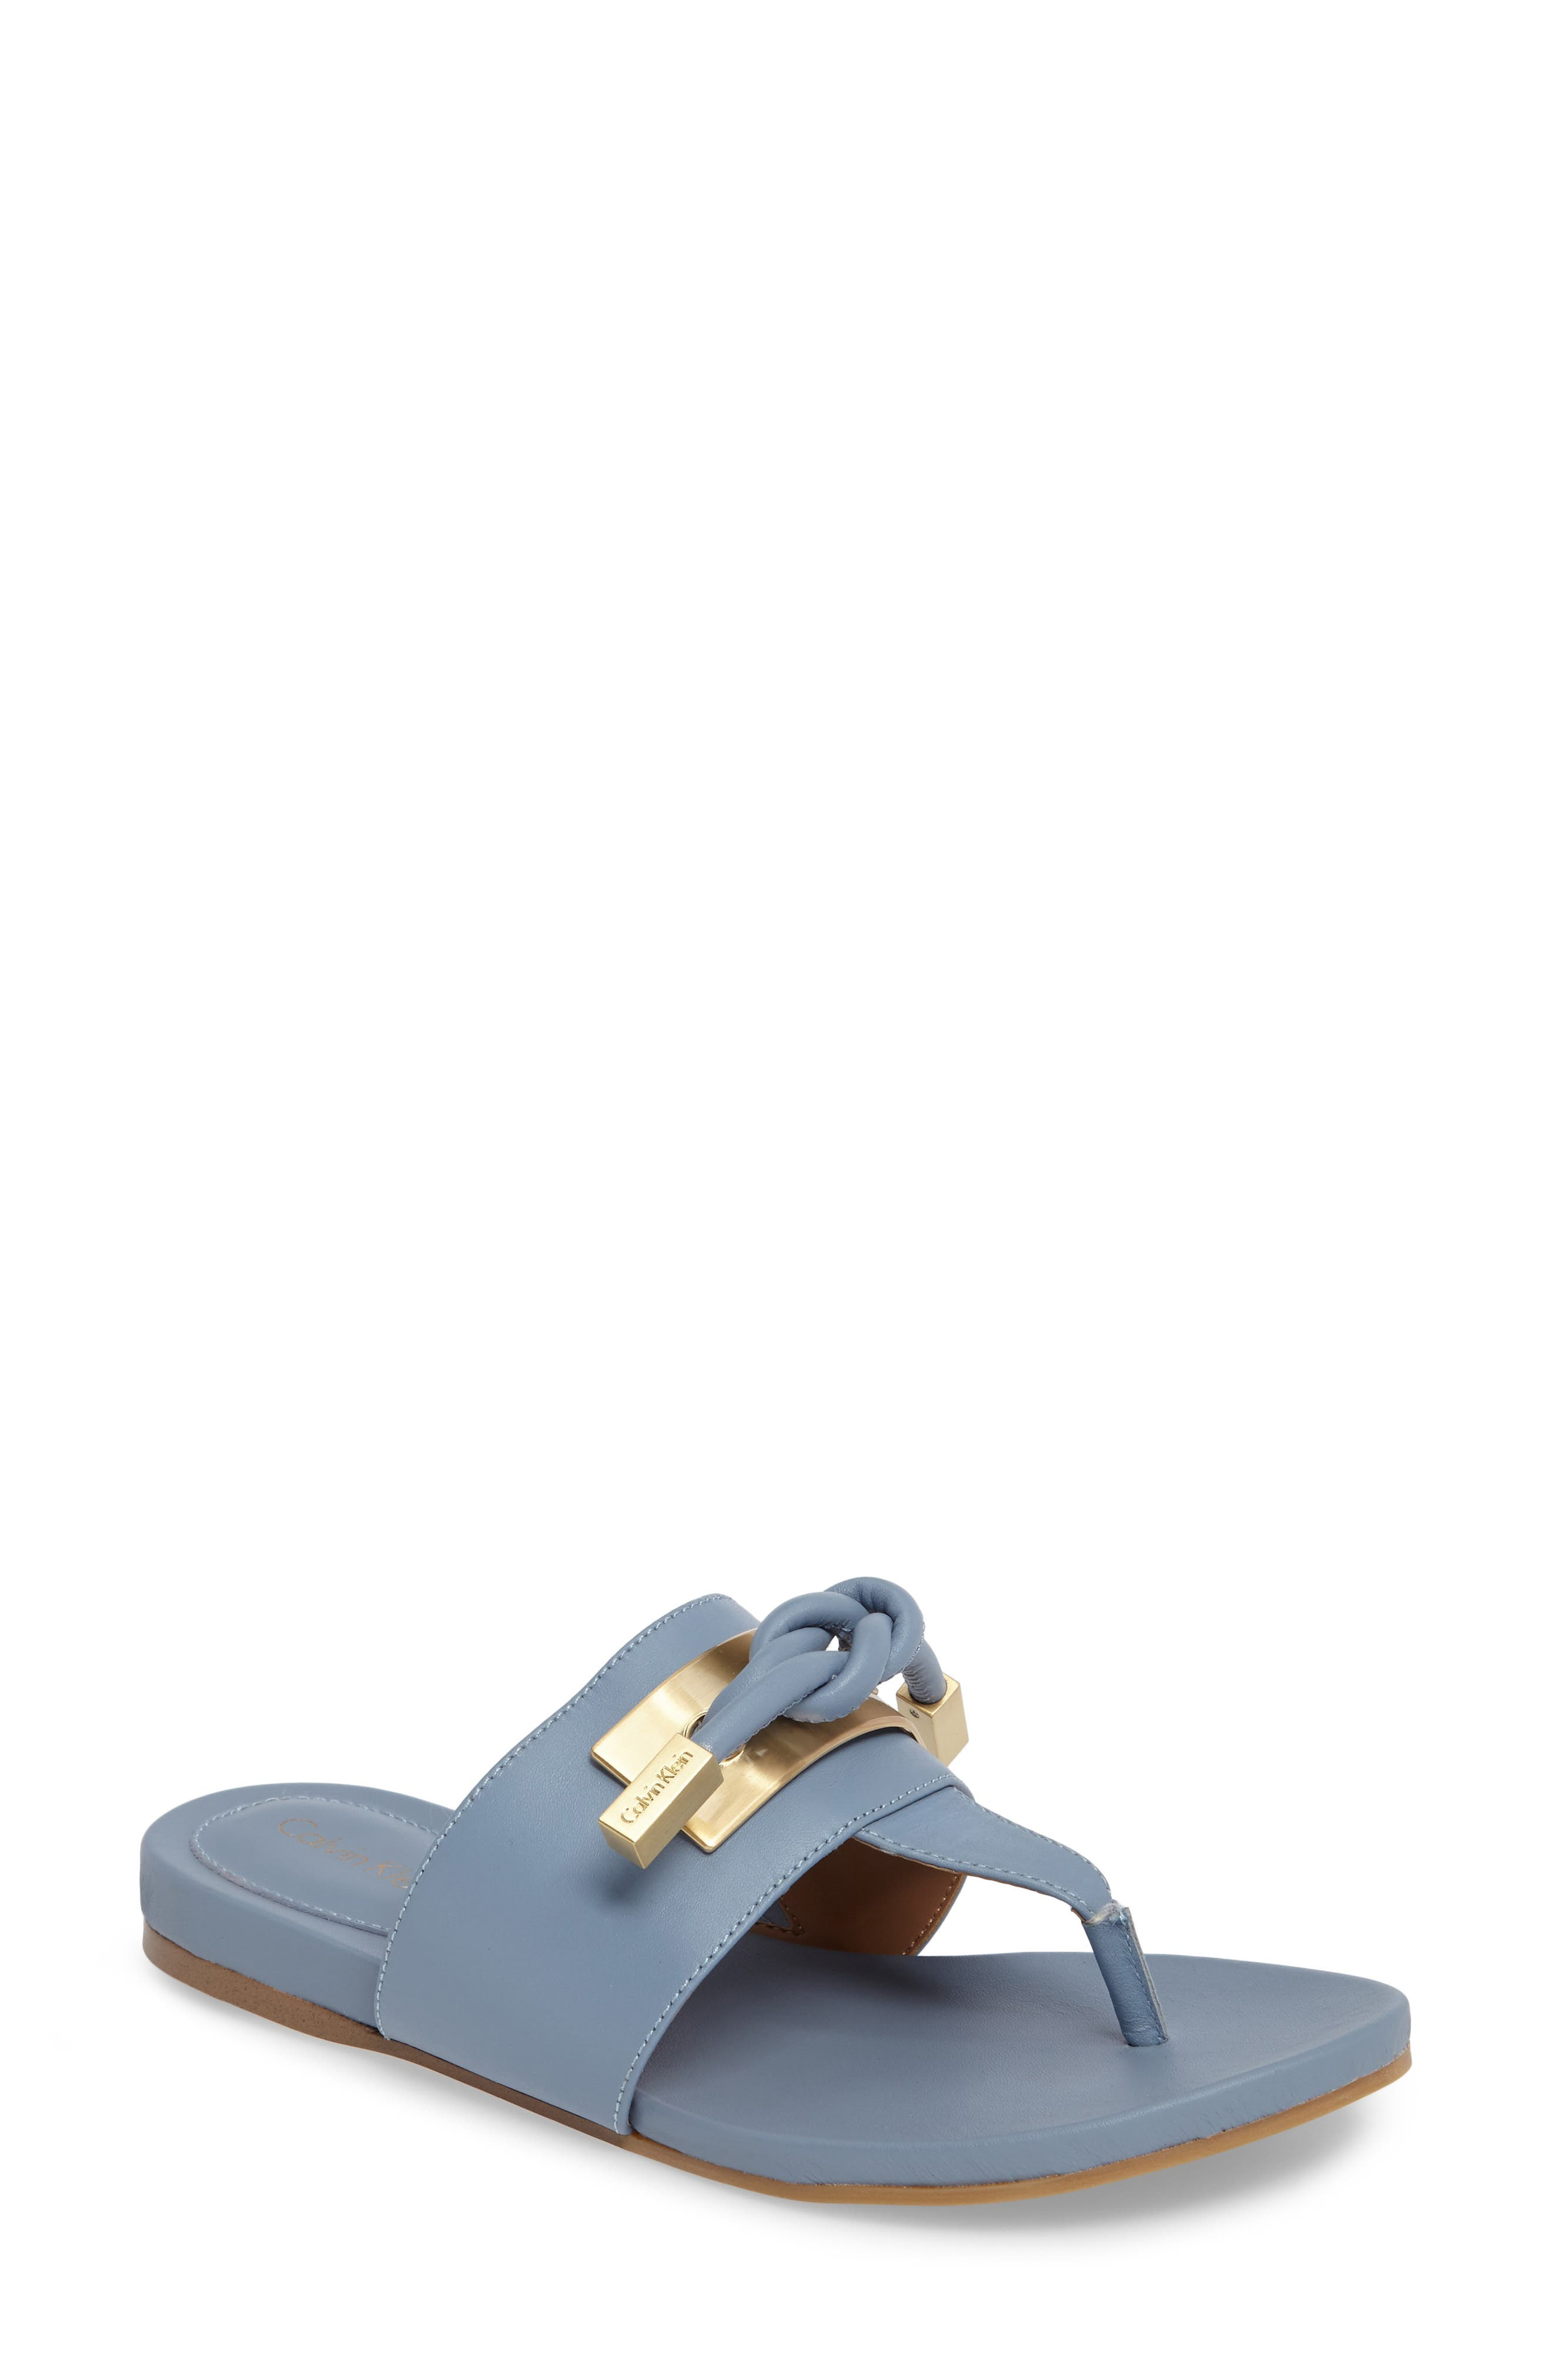 Alternate Image 1 Selected - Calvin Klein Parson Square Knot Flip Flop (Women)